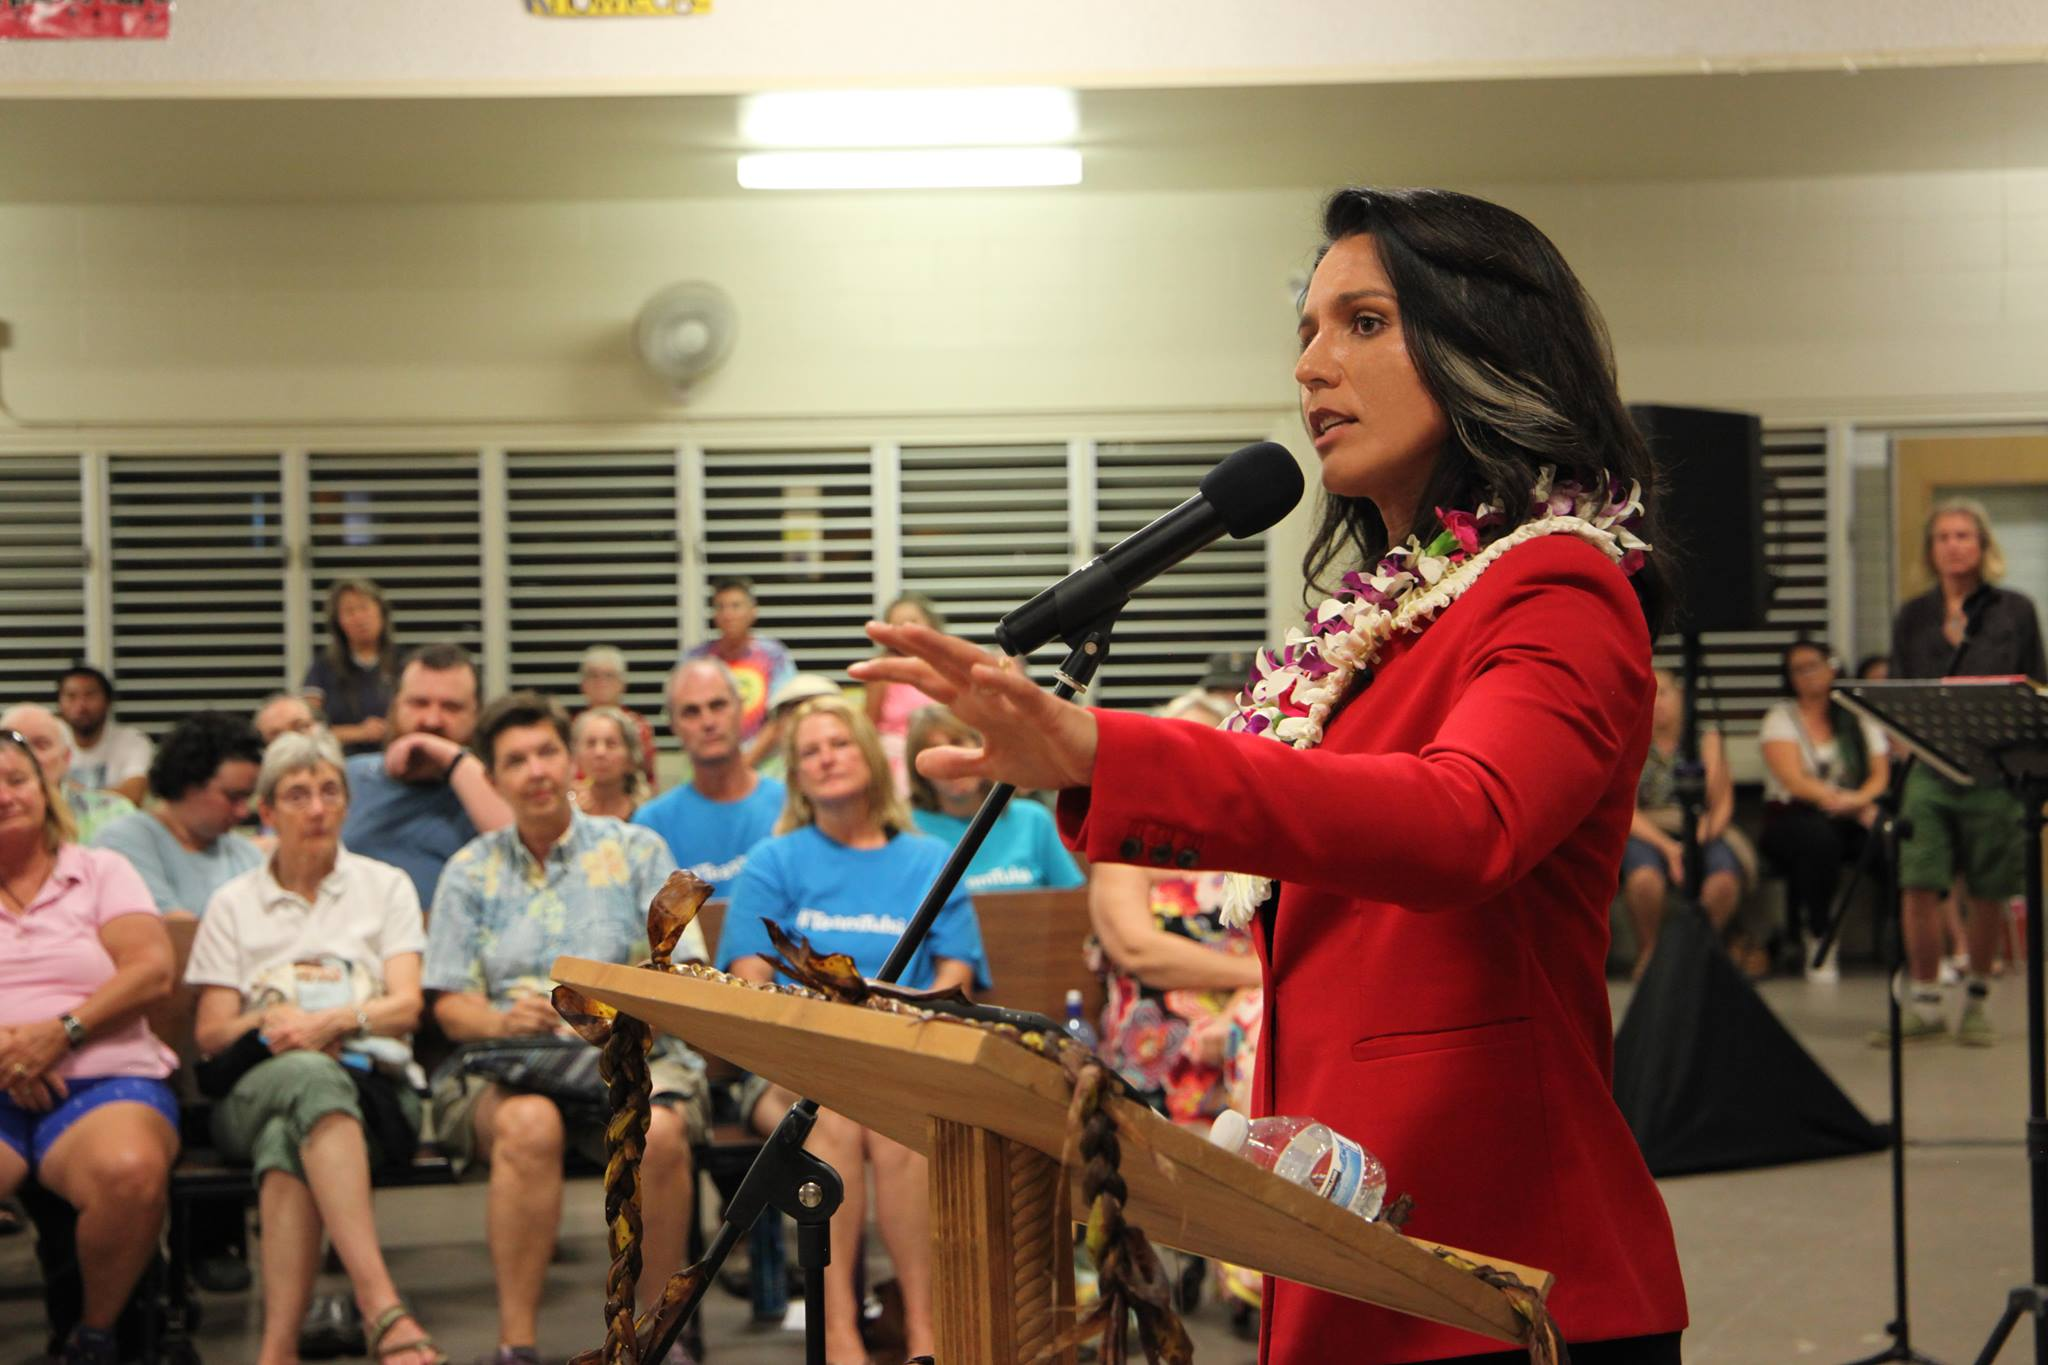 Gabbard Recognizes #GivingTuesday as Opportunity to Unite Country